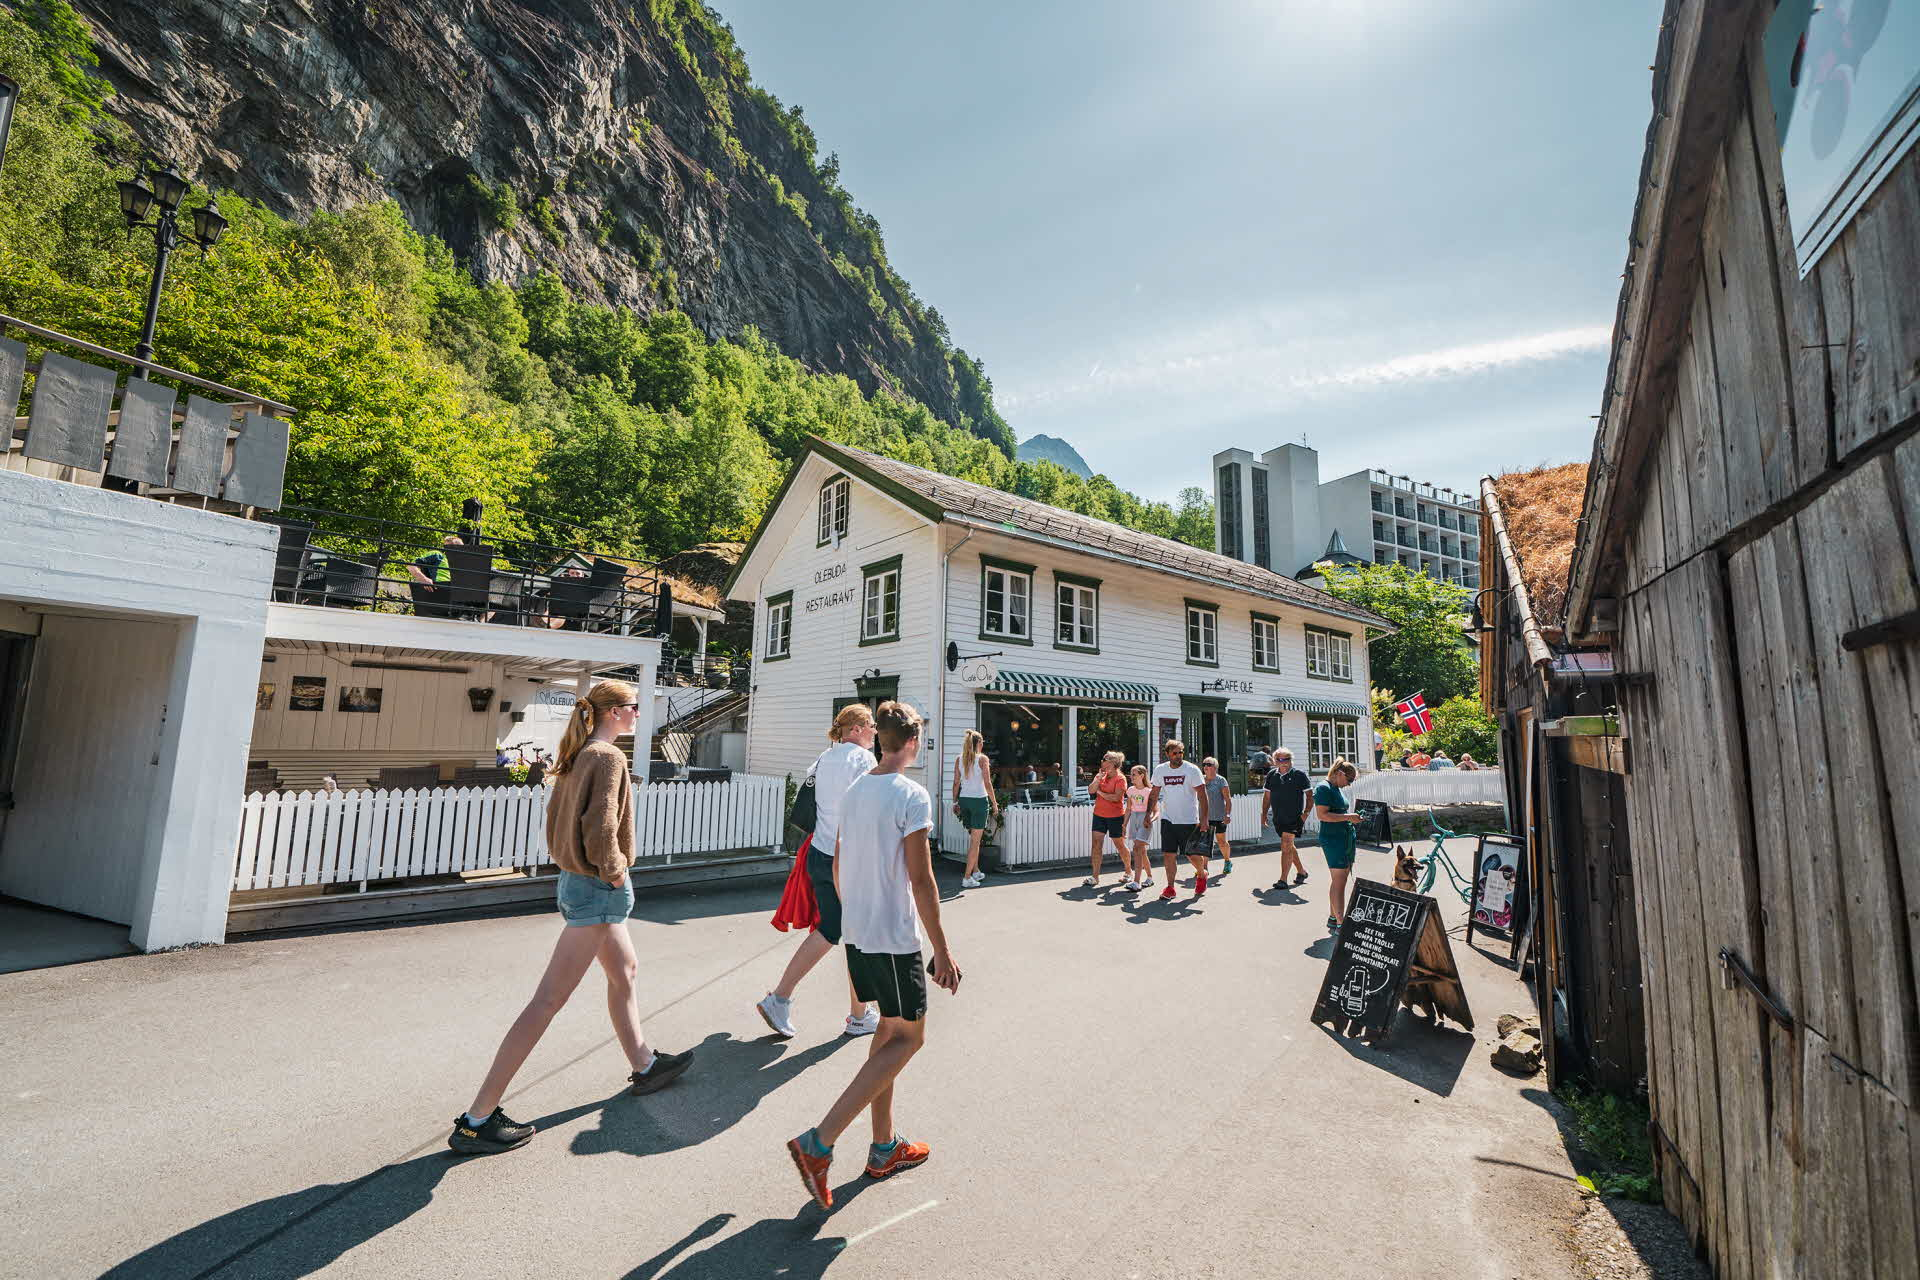 People walking in Geiranger town centre